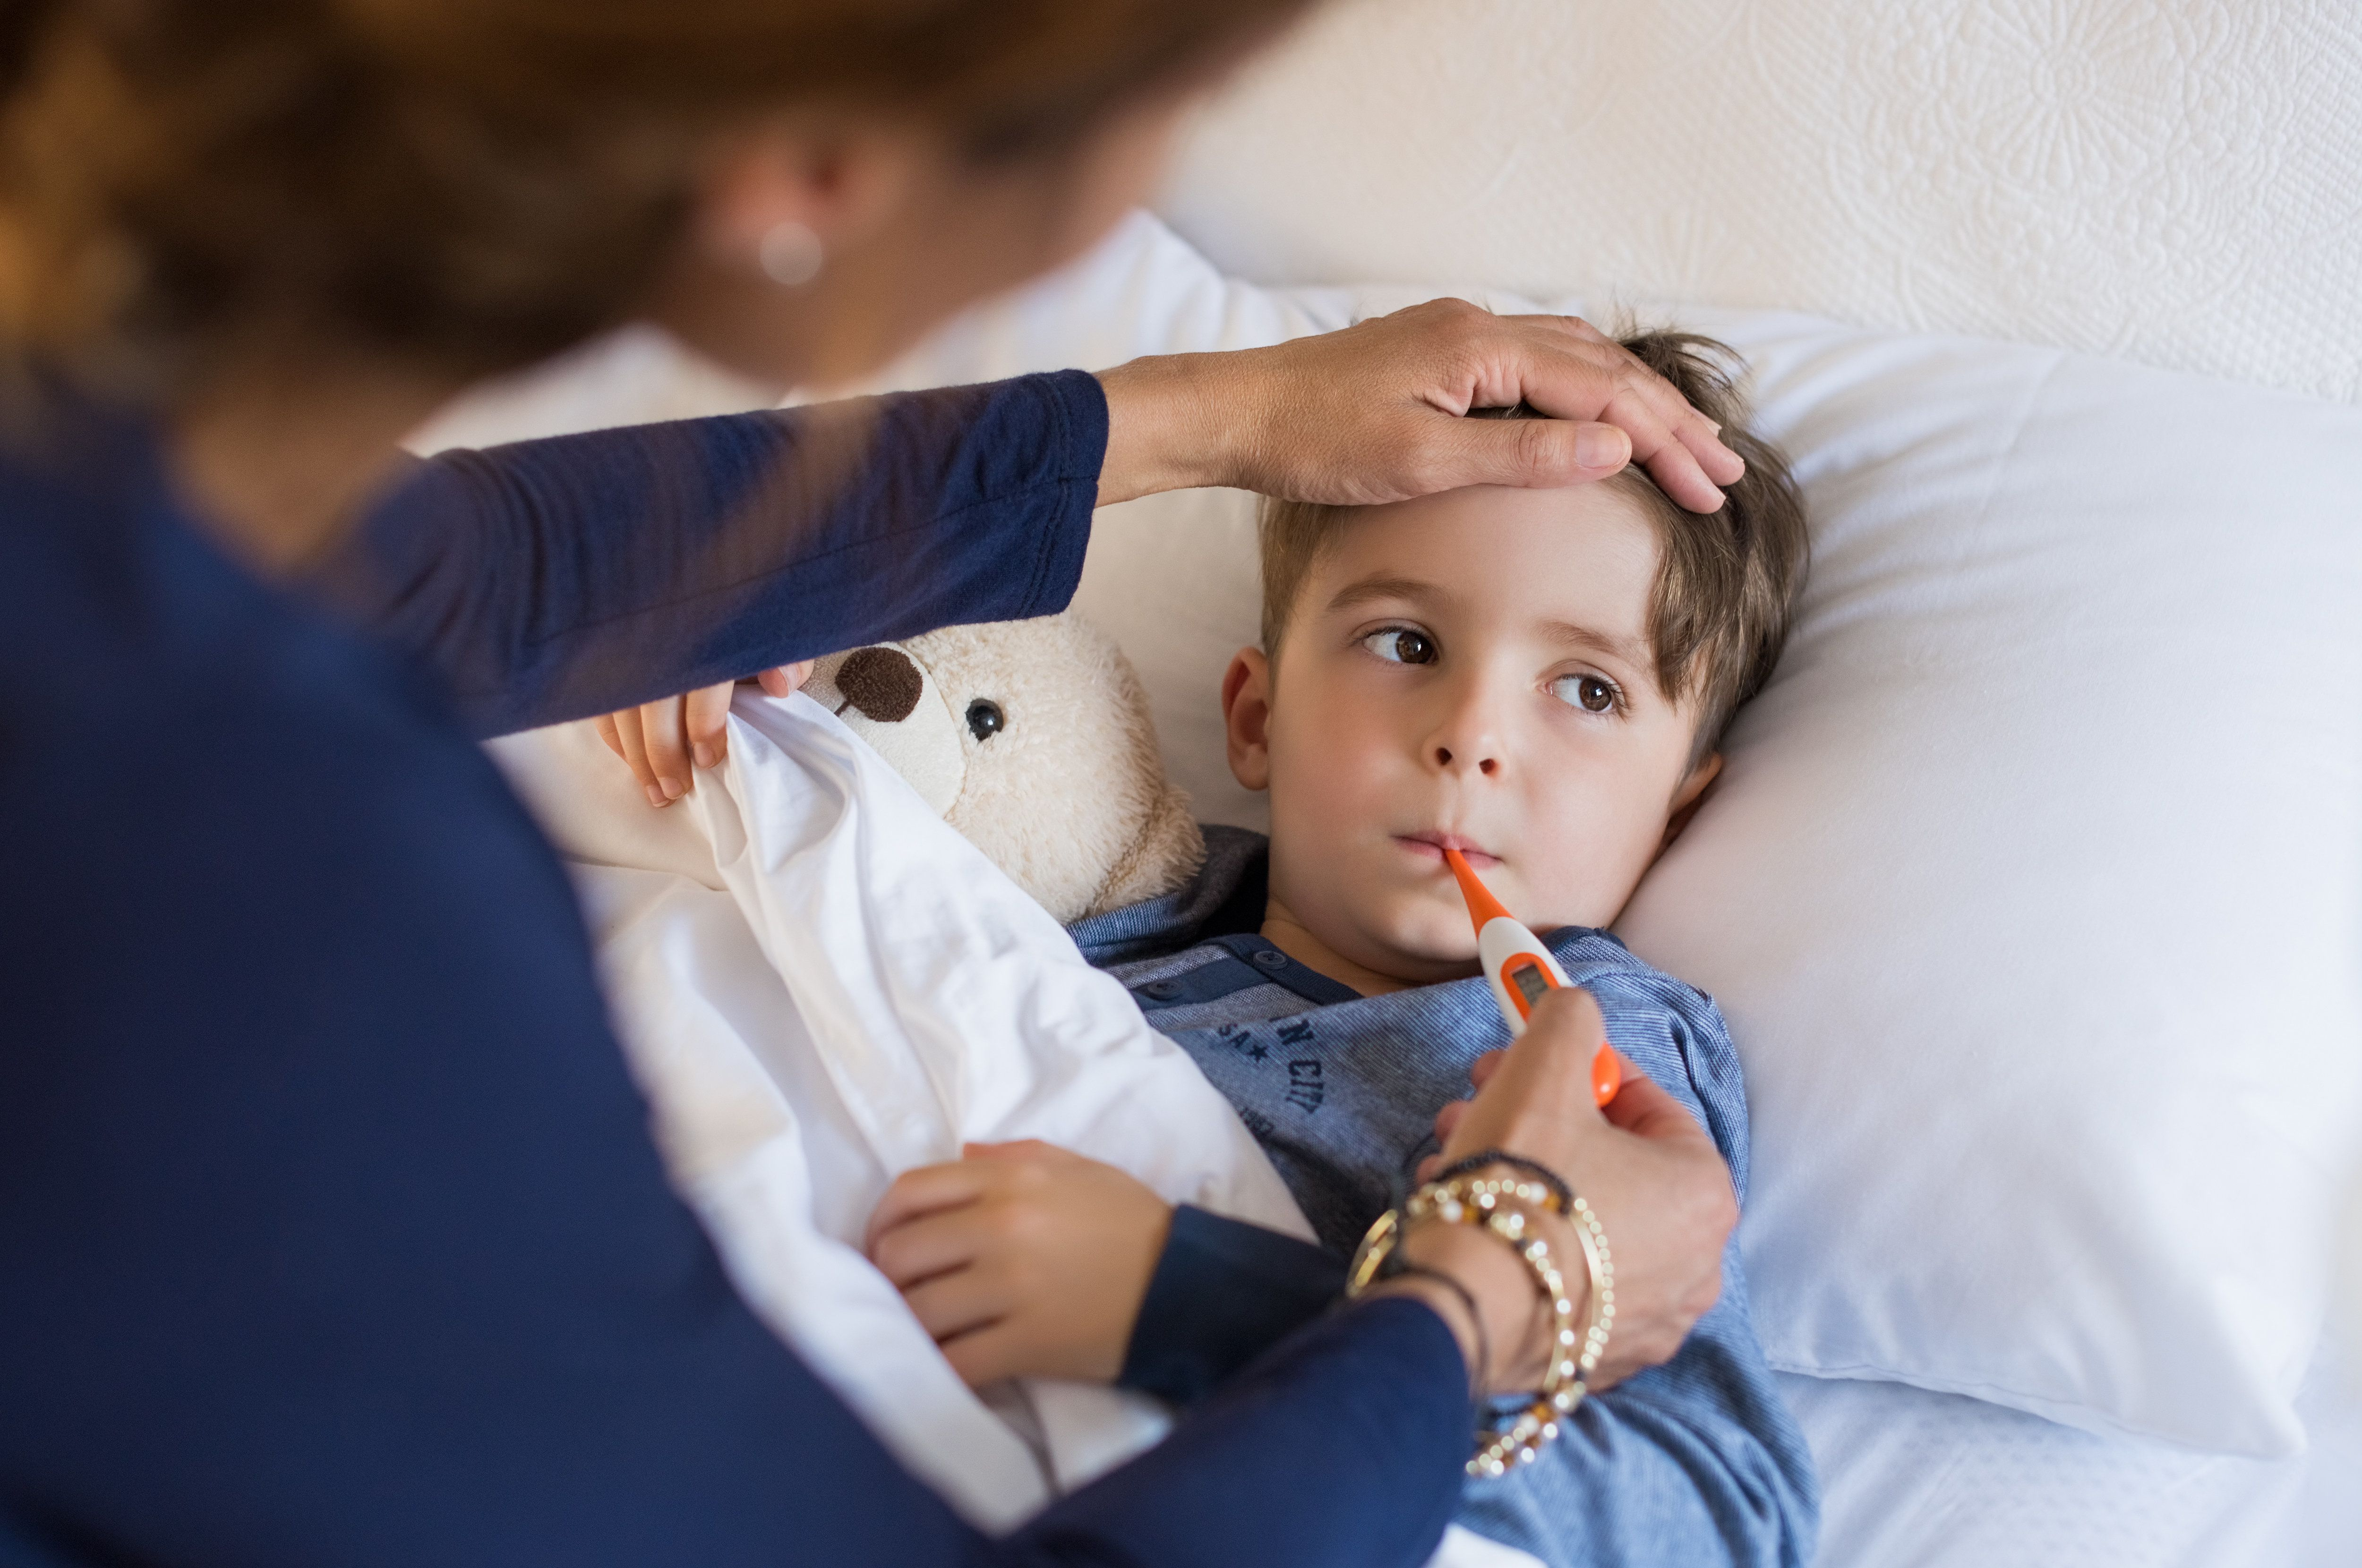 What Are The Symptoms Of Measles? Everything You Need To Know About The Rash And